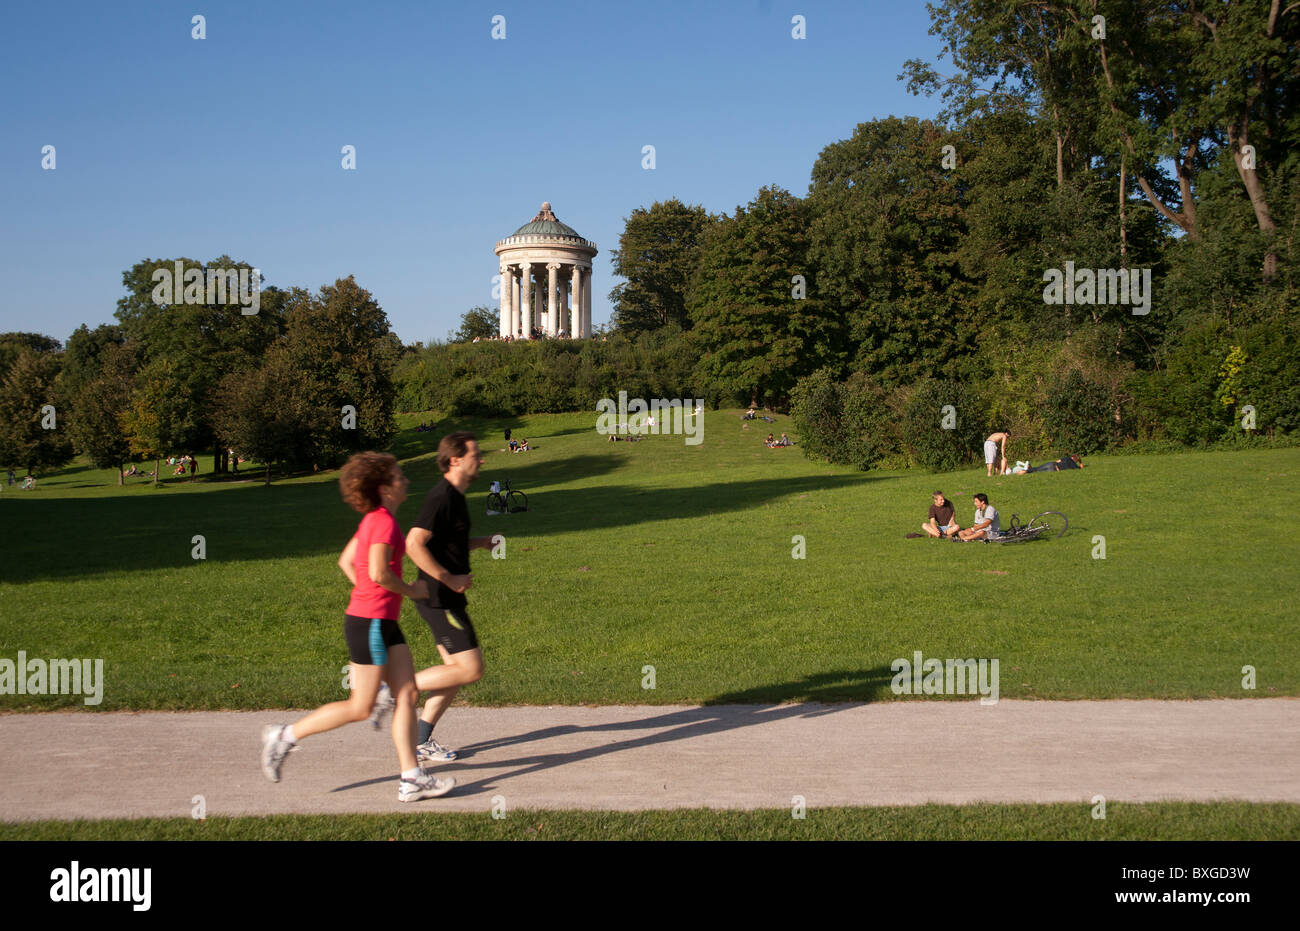 Runners in the Englischer Garten Munich. Monopteros in the background. - Stock Image